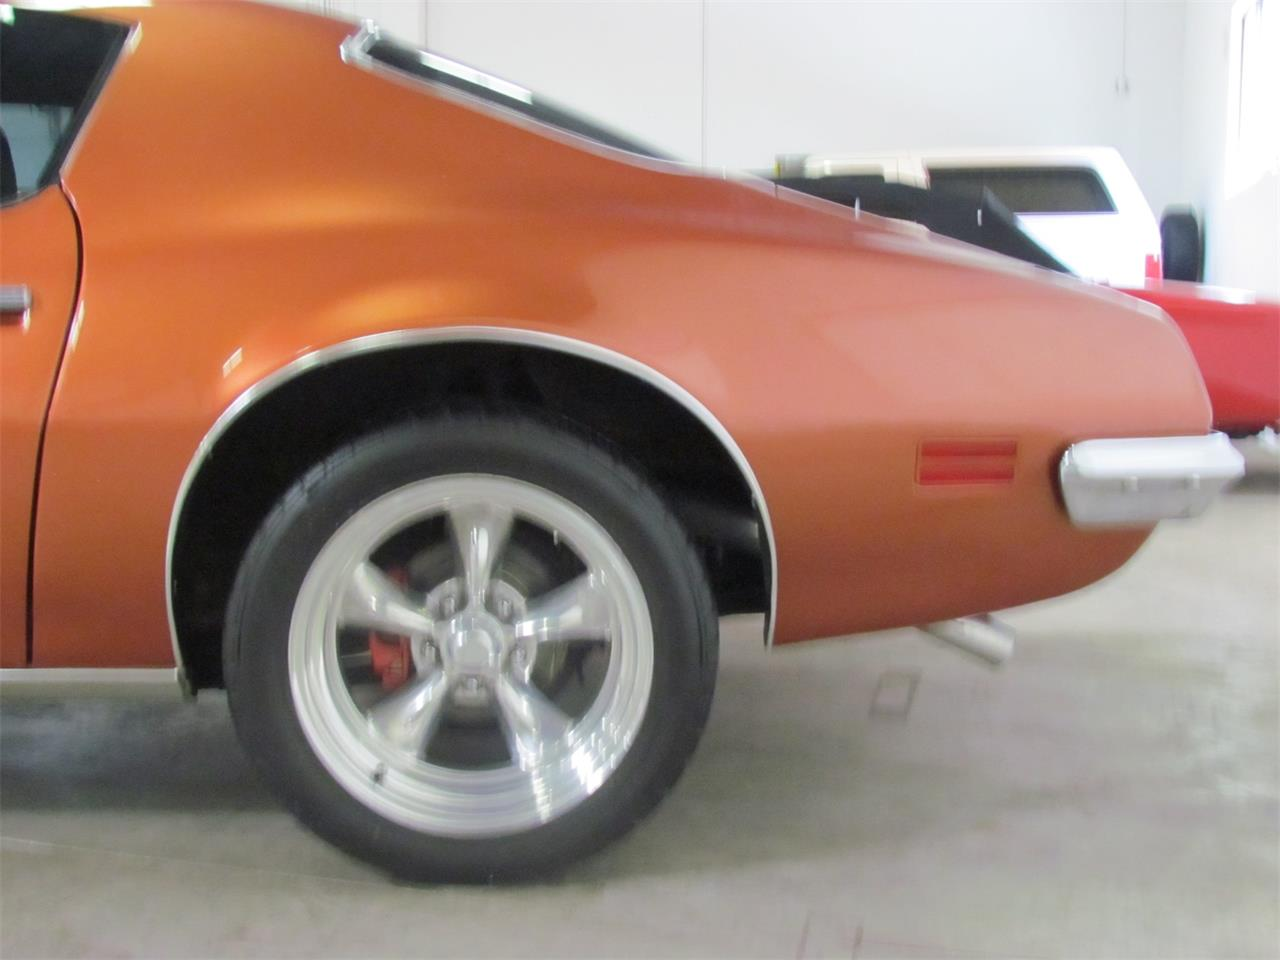 1972 Pontiac Firebird for sale in Gurnee, IL – photo 12